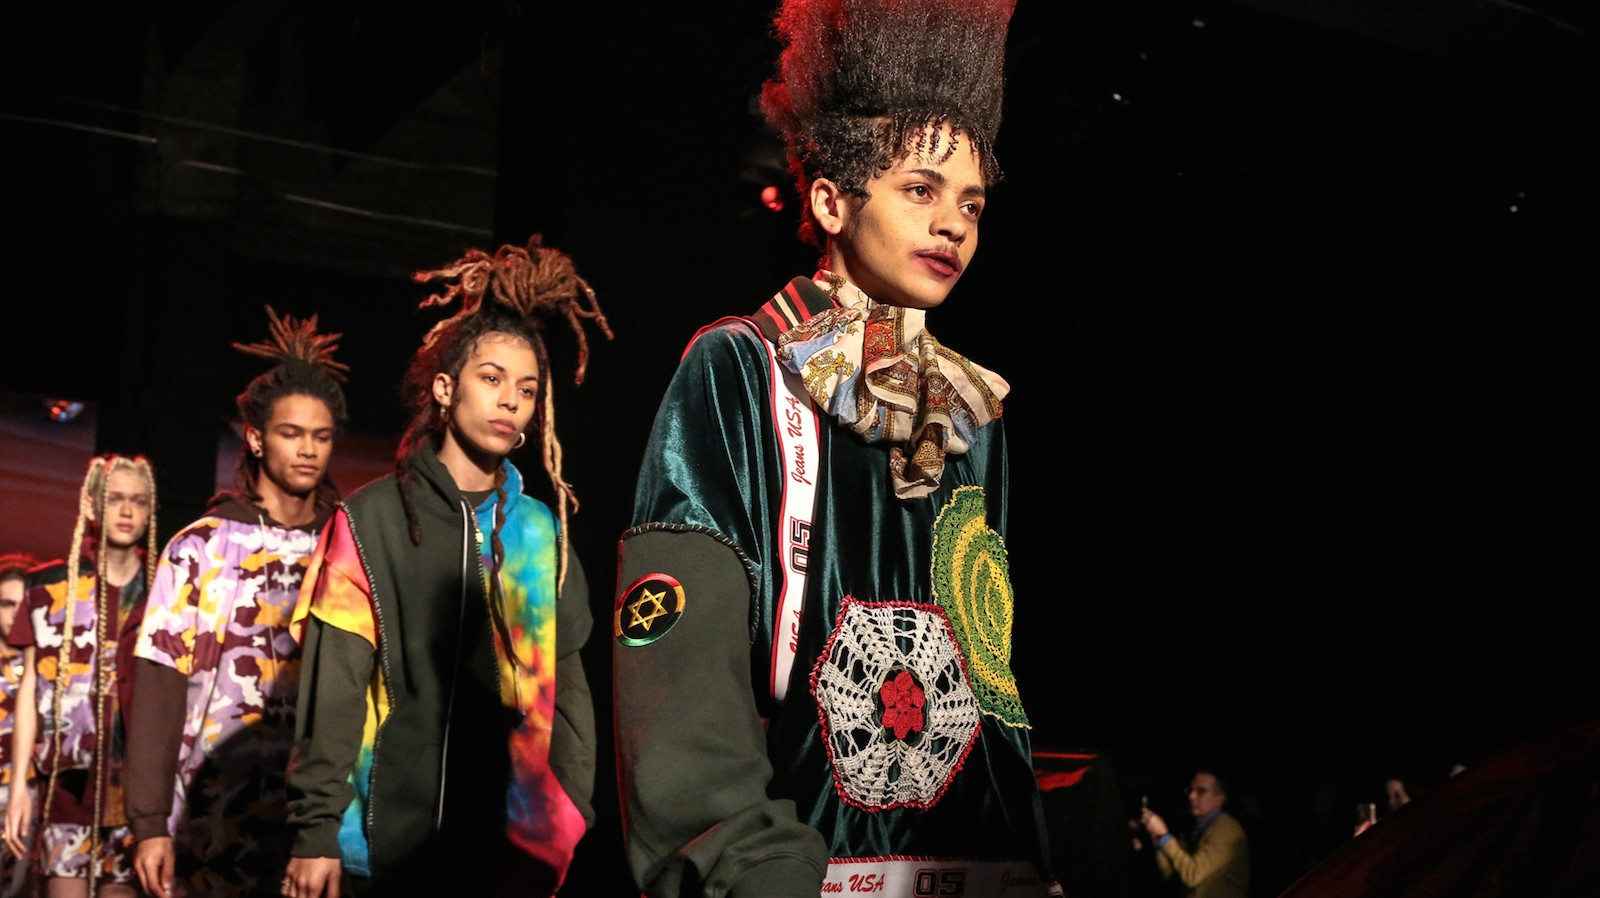 gypsy sport casts marchers and protesters for autumn/winter 17